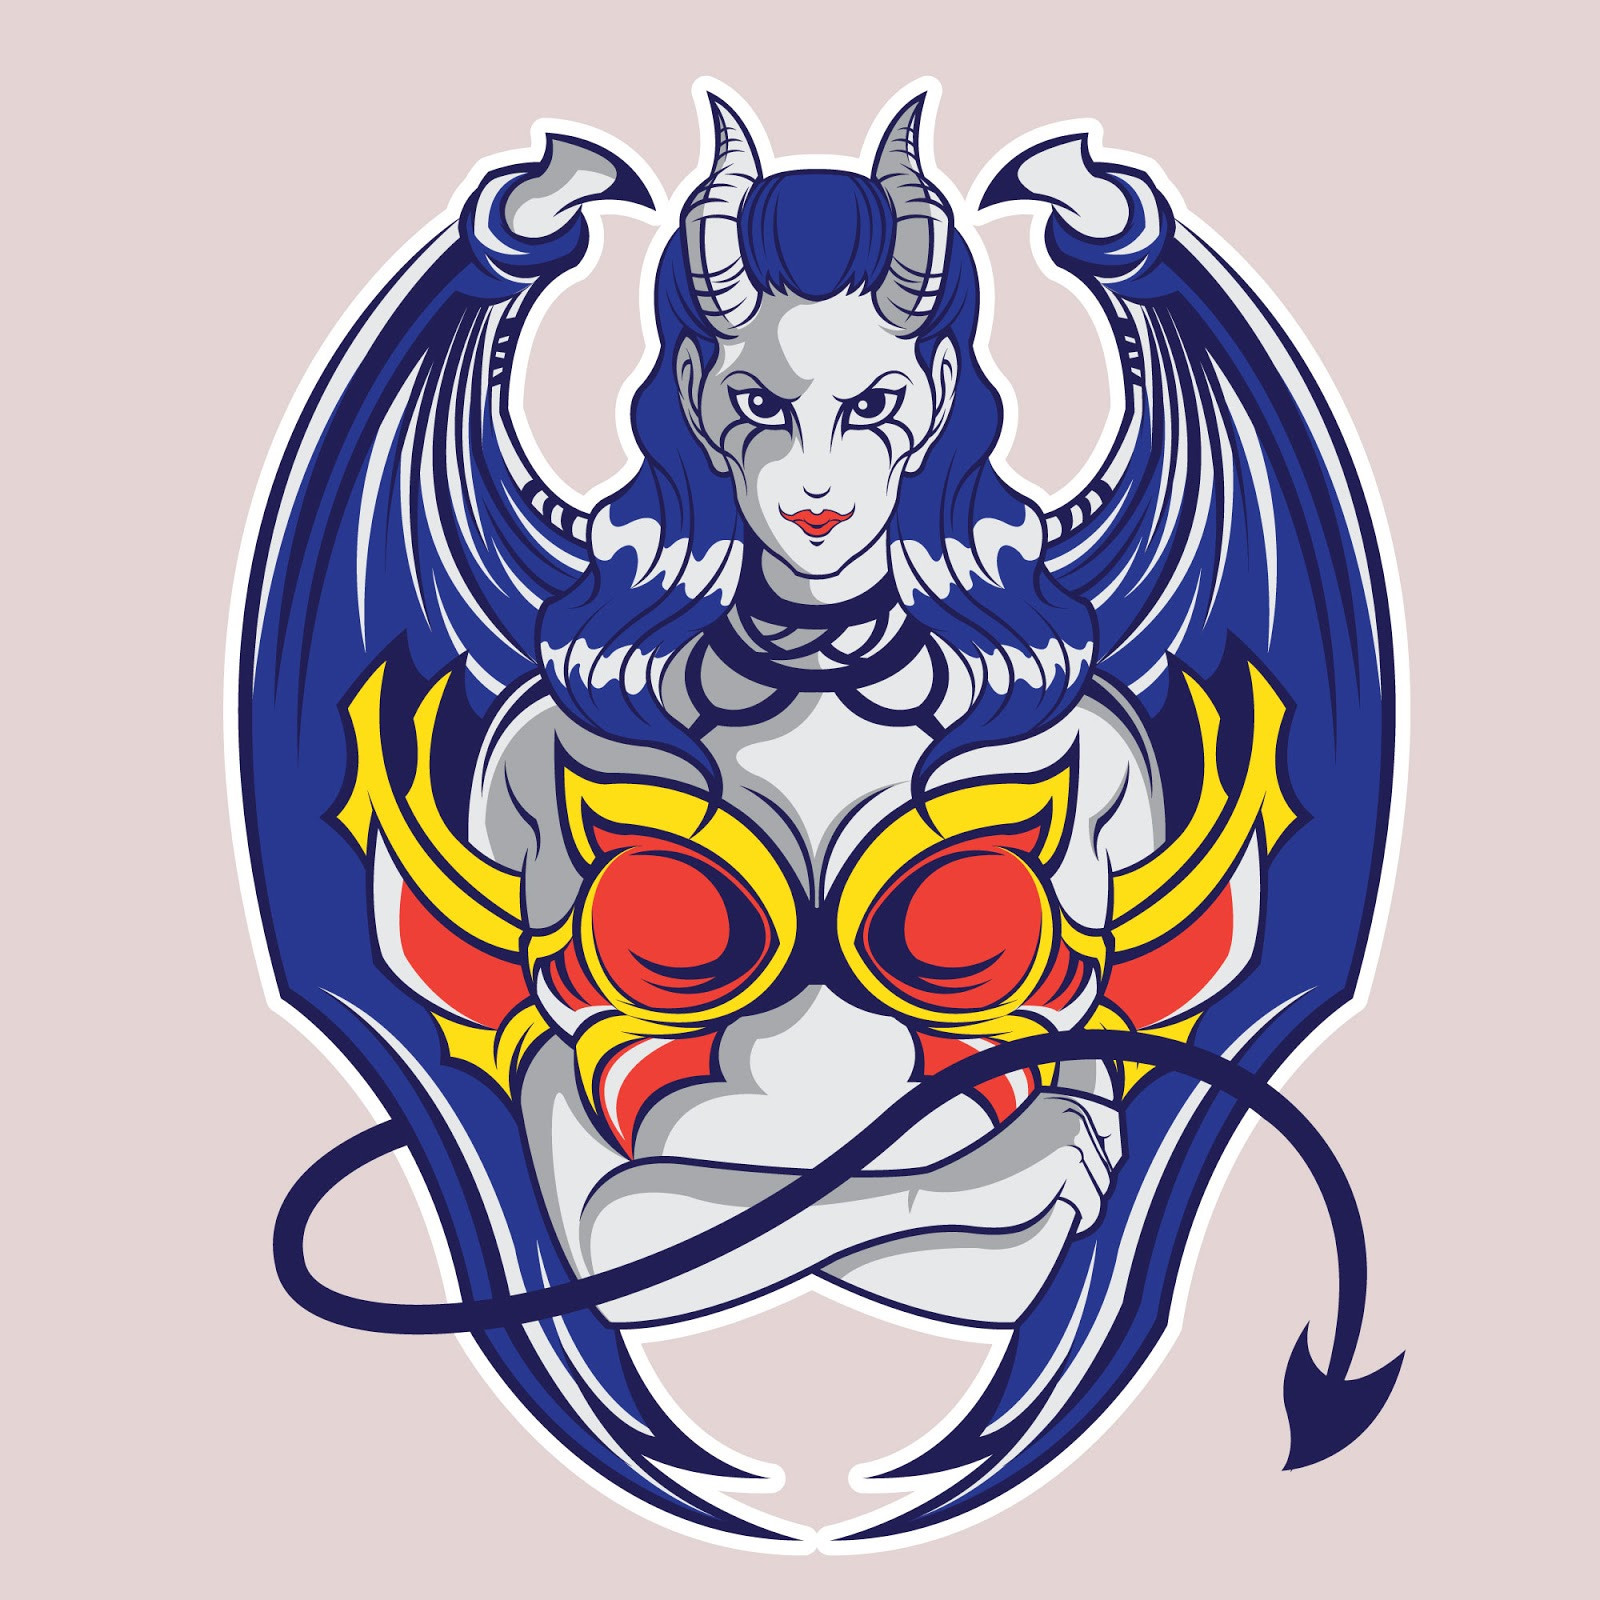 Demon Girl Illustration T Shirt Design Free Download Vector CDR, AI, EPS and PNG Formats